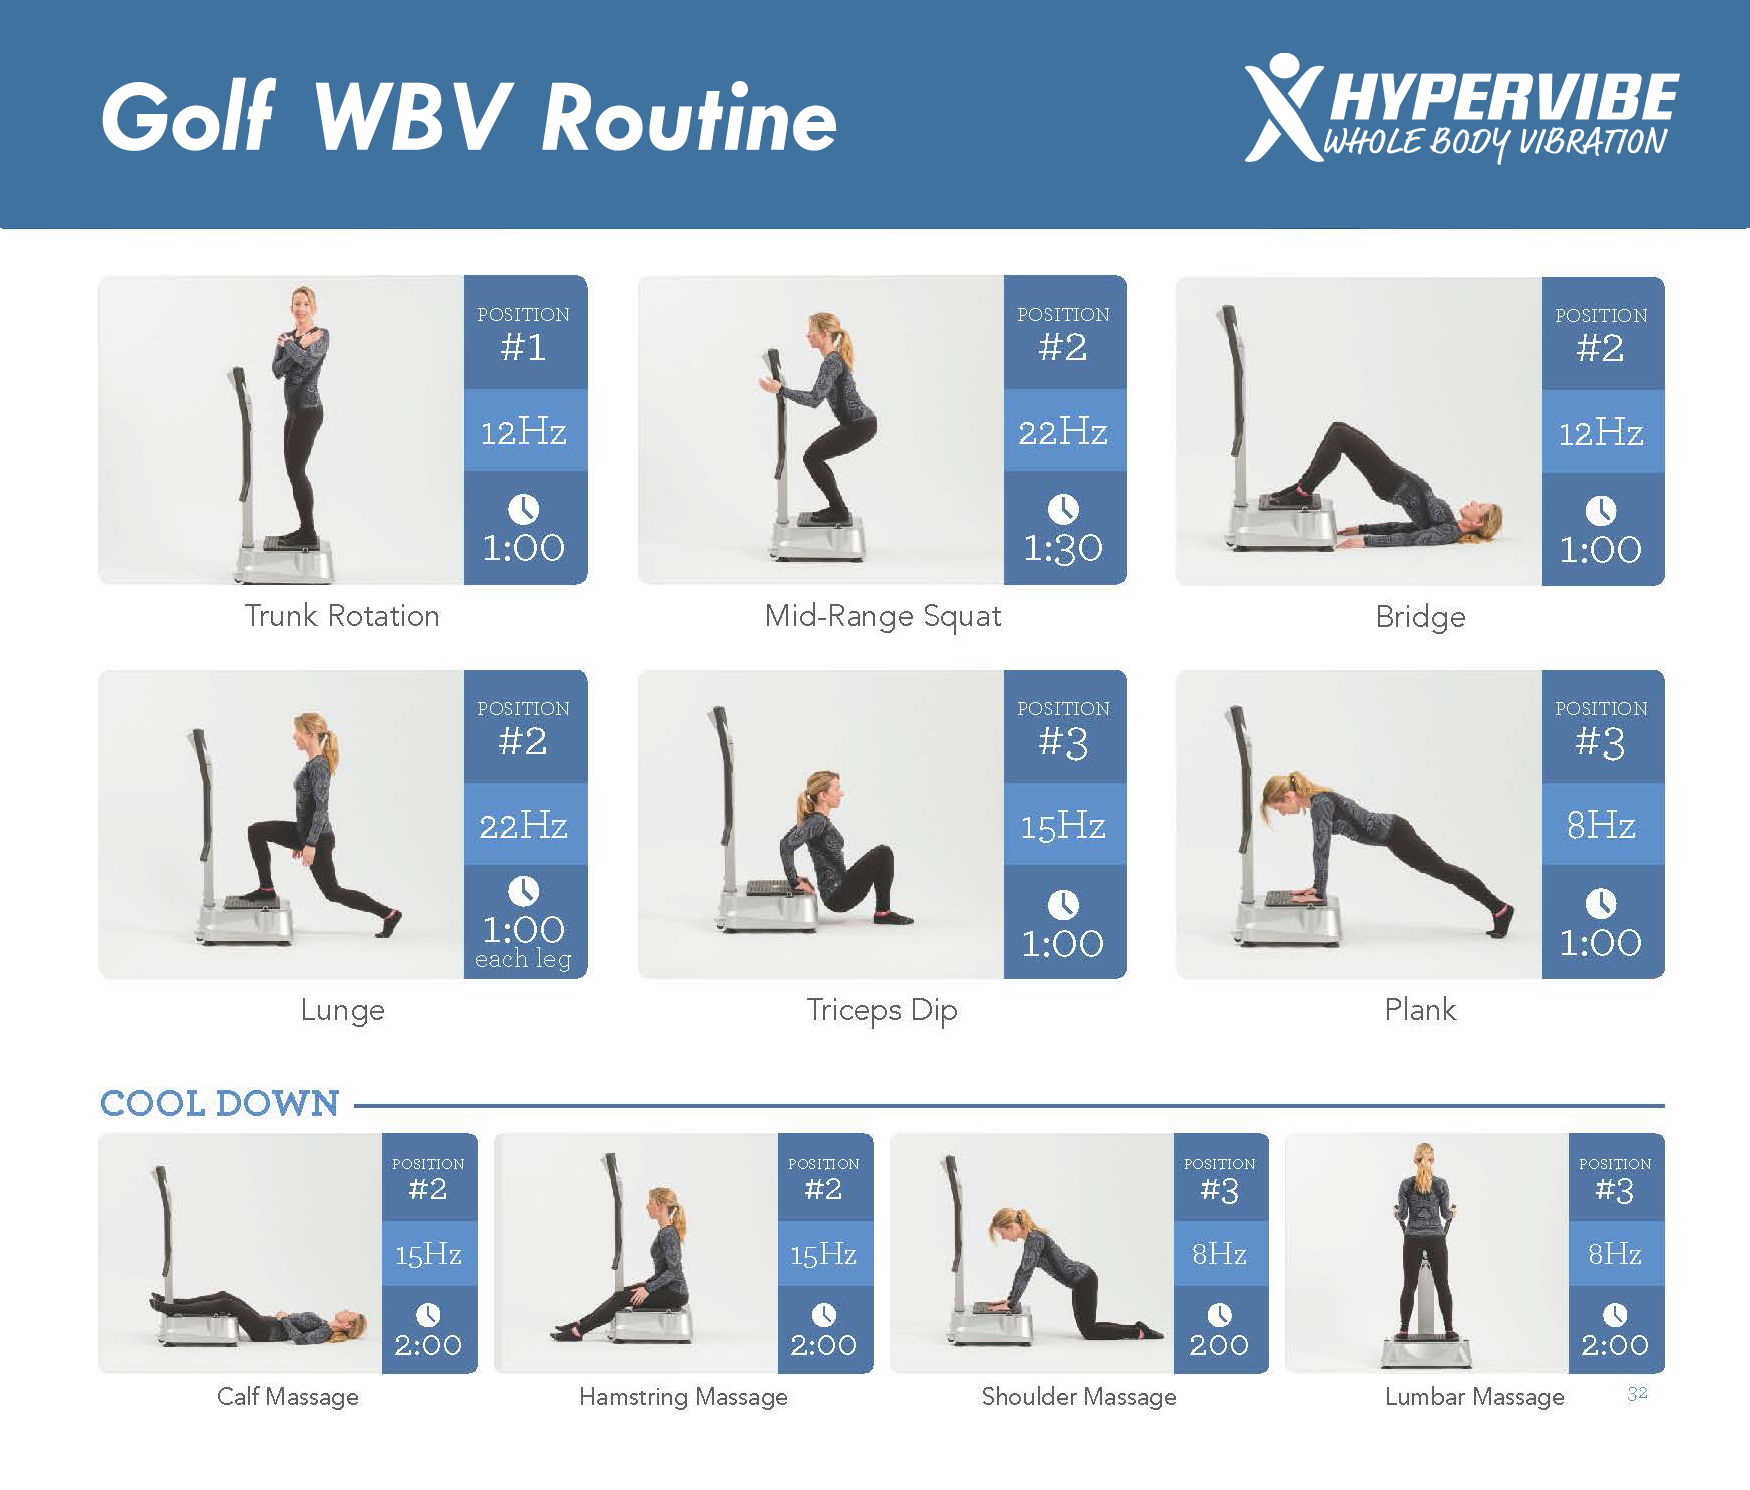 Whole Body Vibration Routine For Golf Players